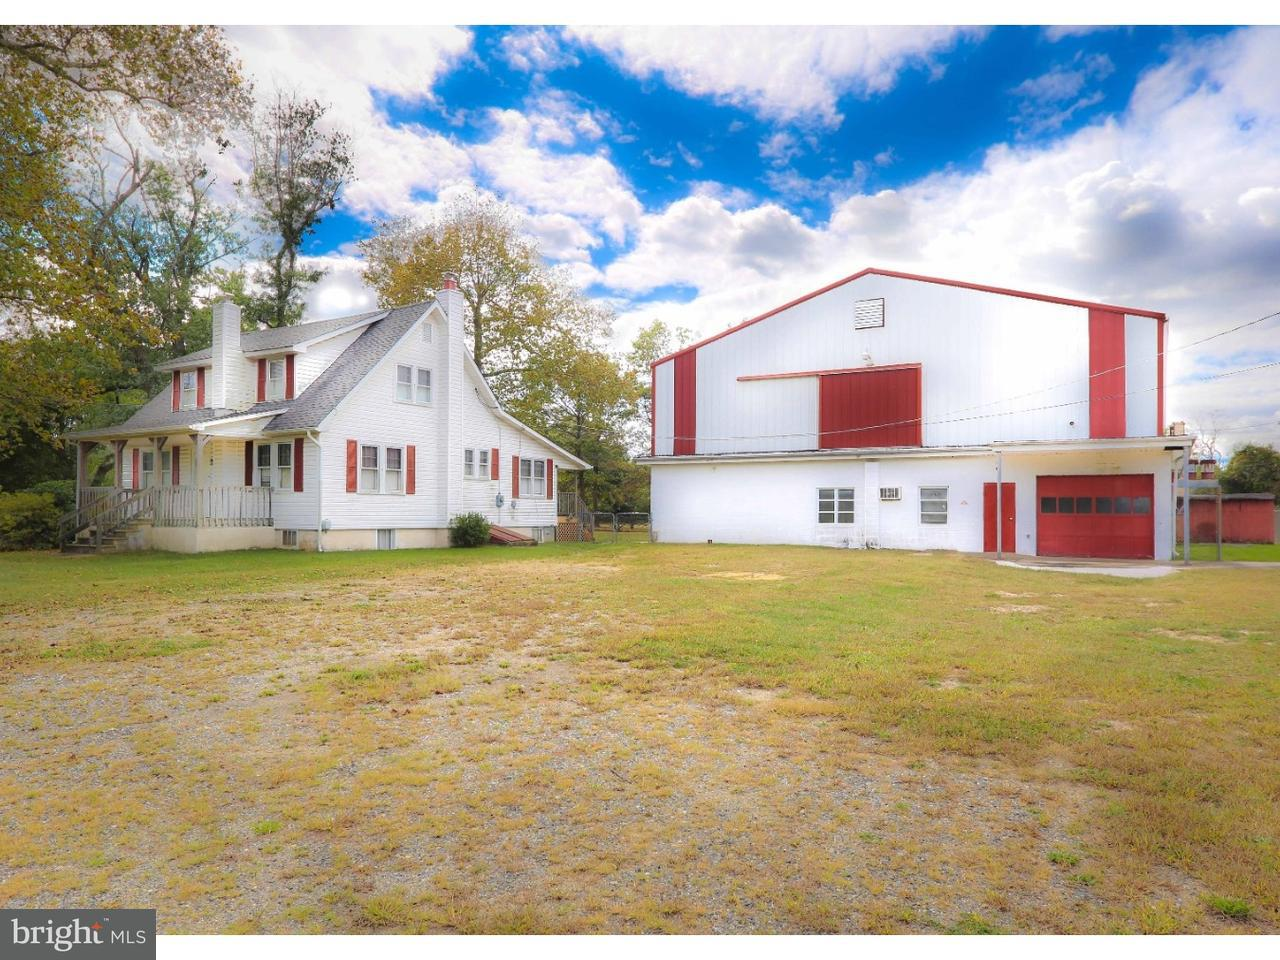 Single Family Home for Sale at 1109 ALVINE Road Pittsgrove, New Jersey 08318 United States